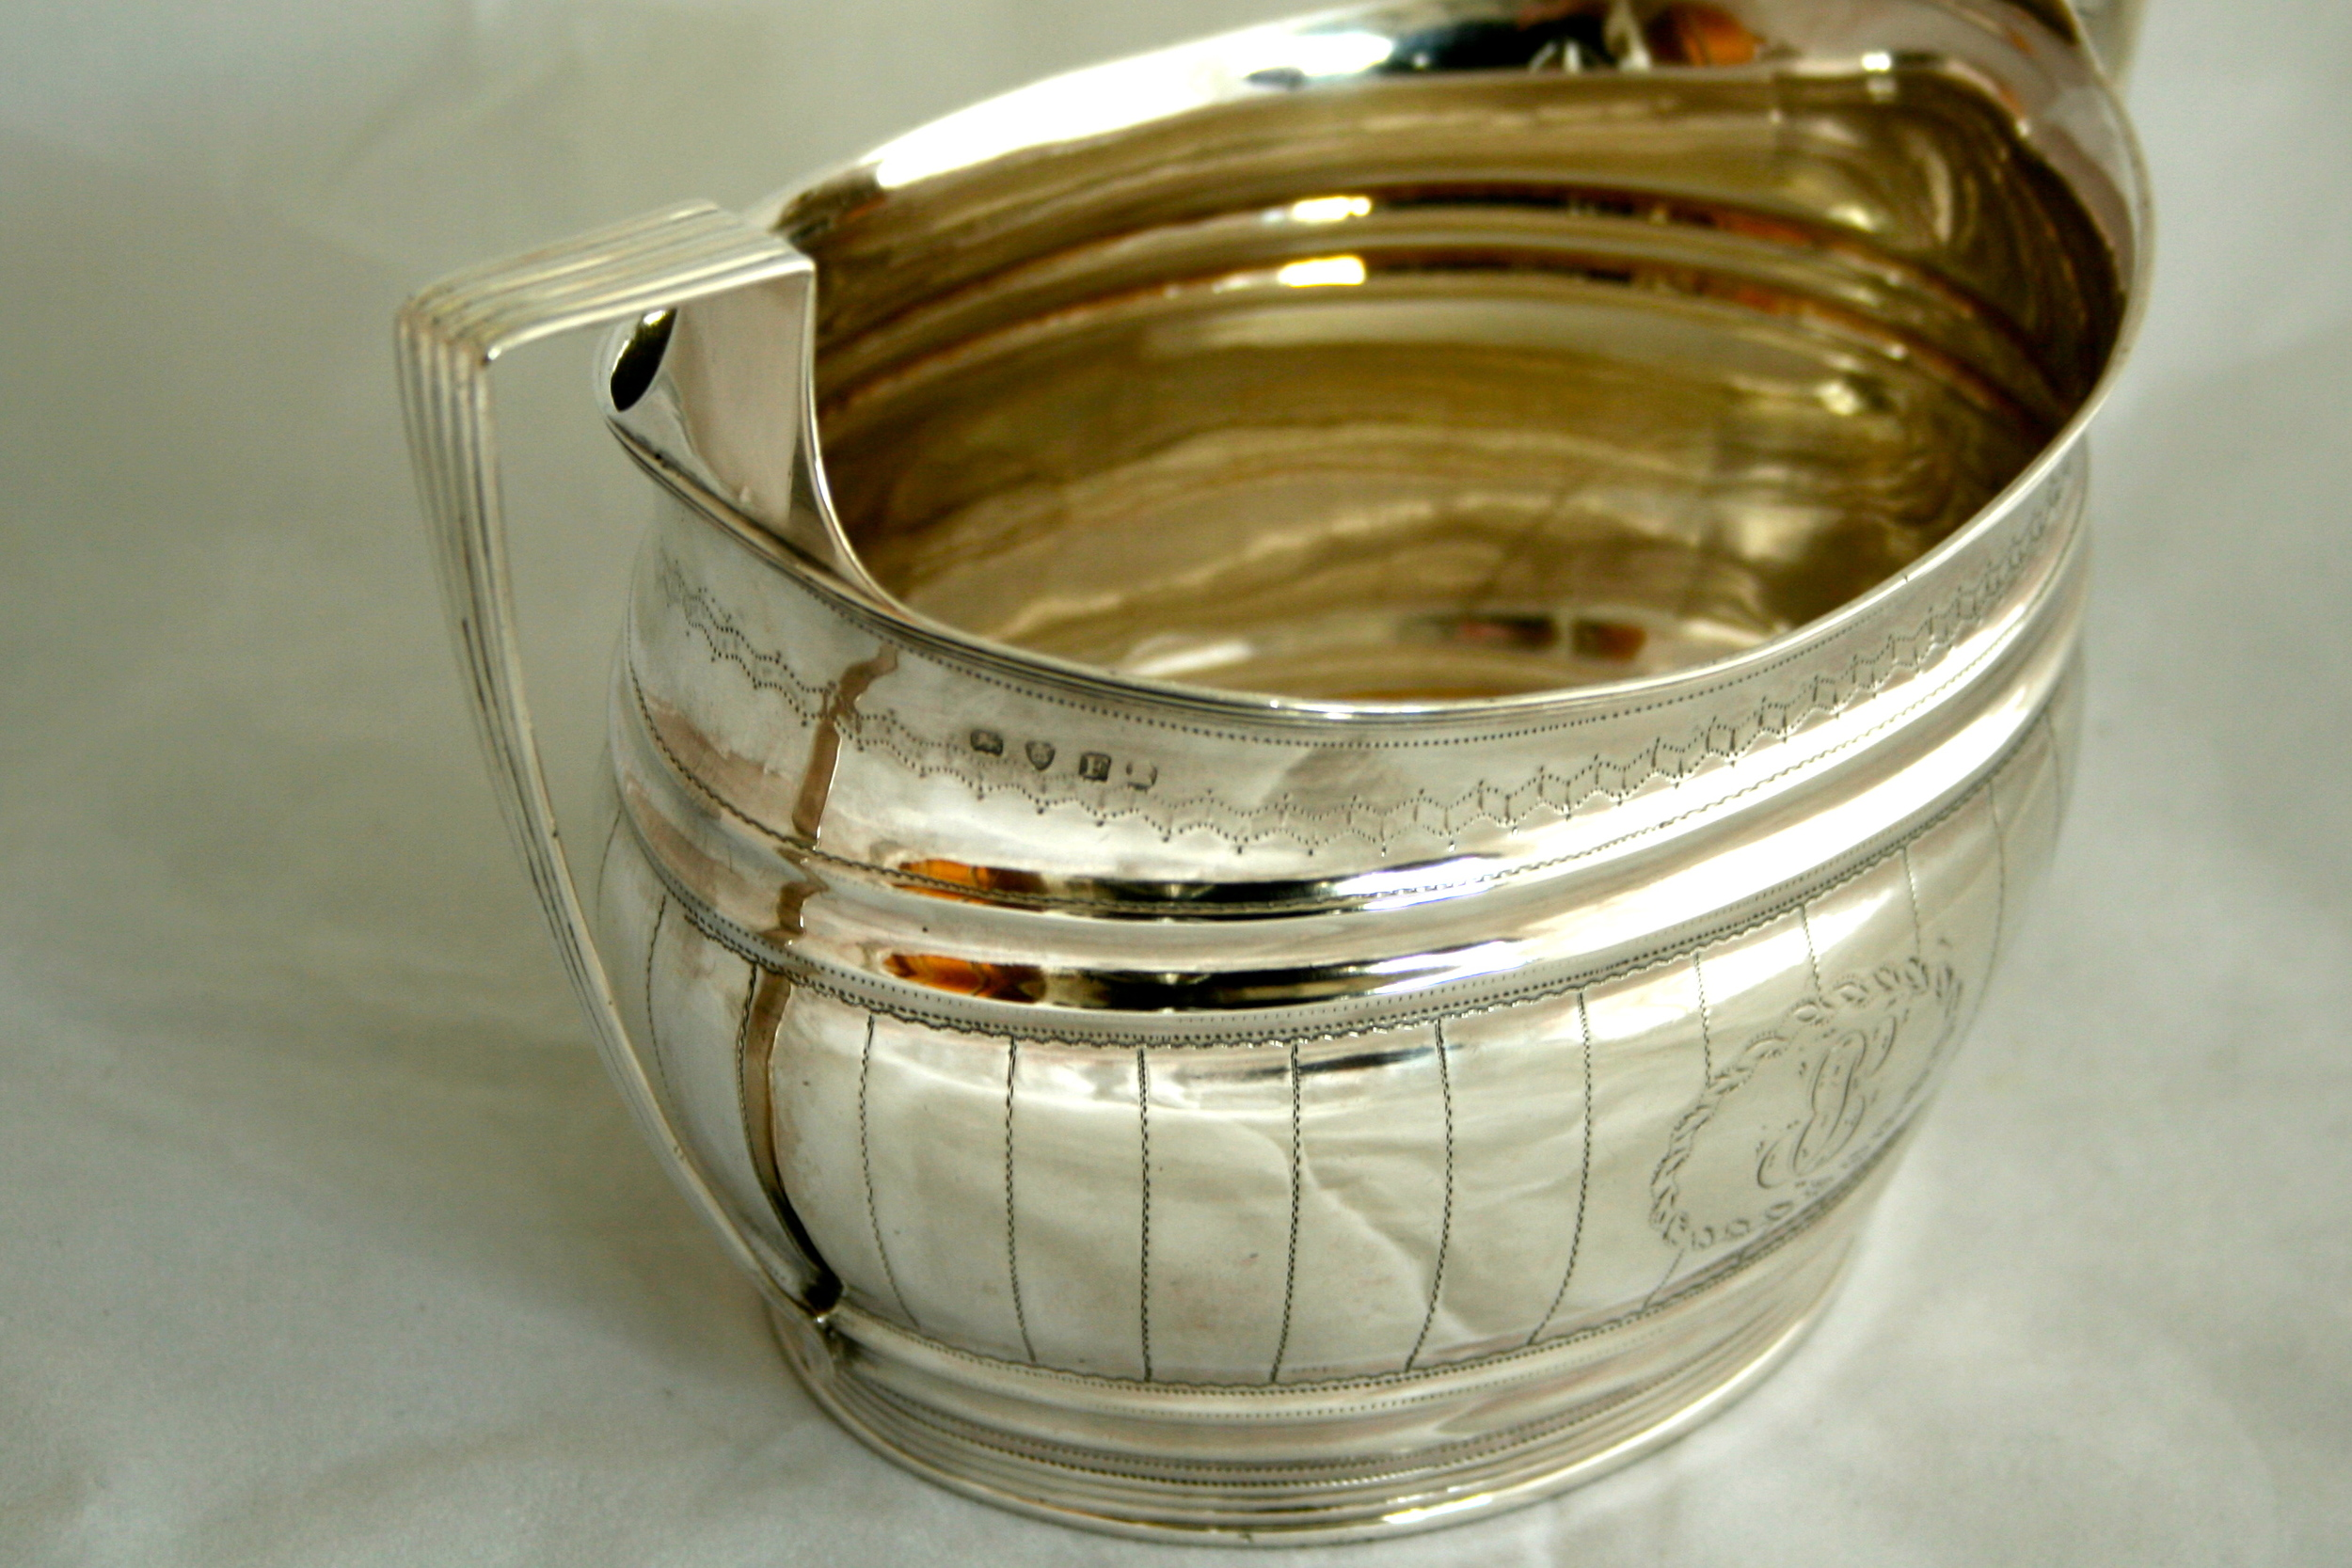 restored antique silver sugar bowl.JPG